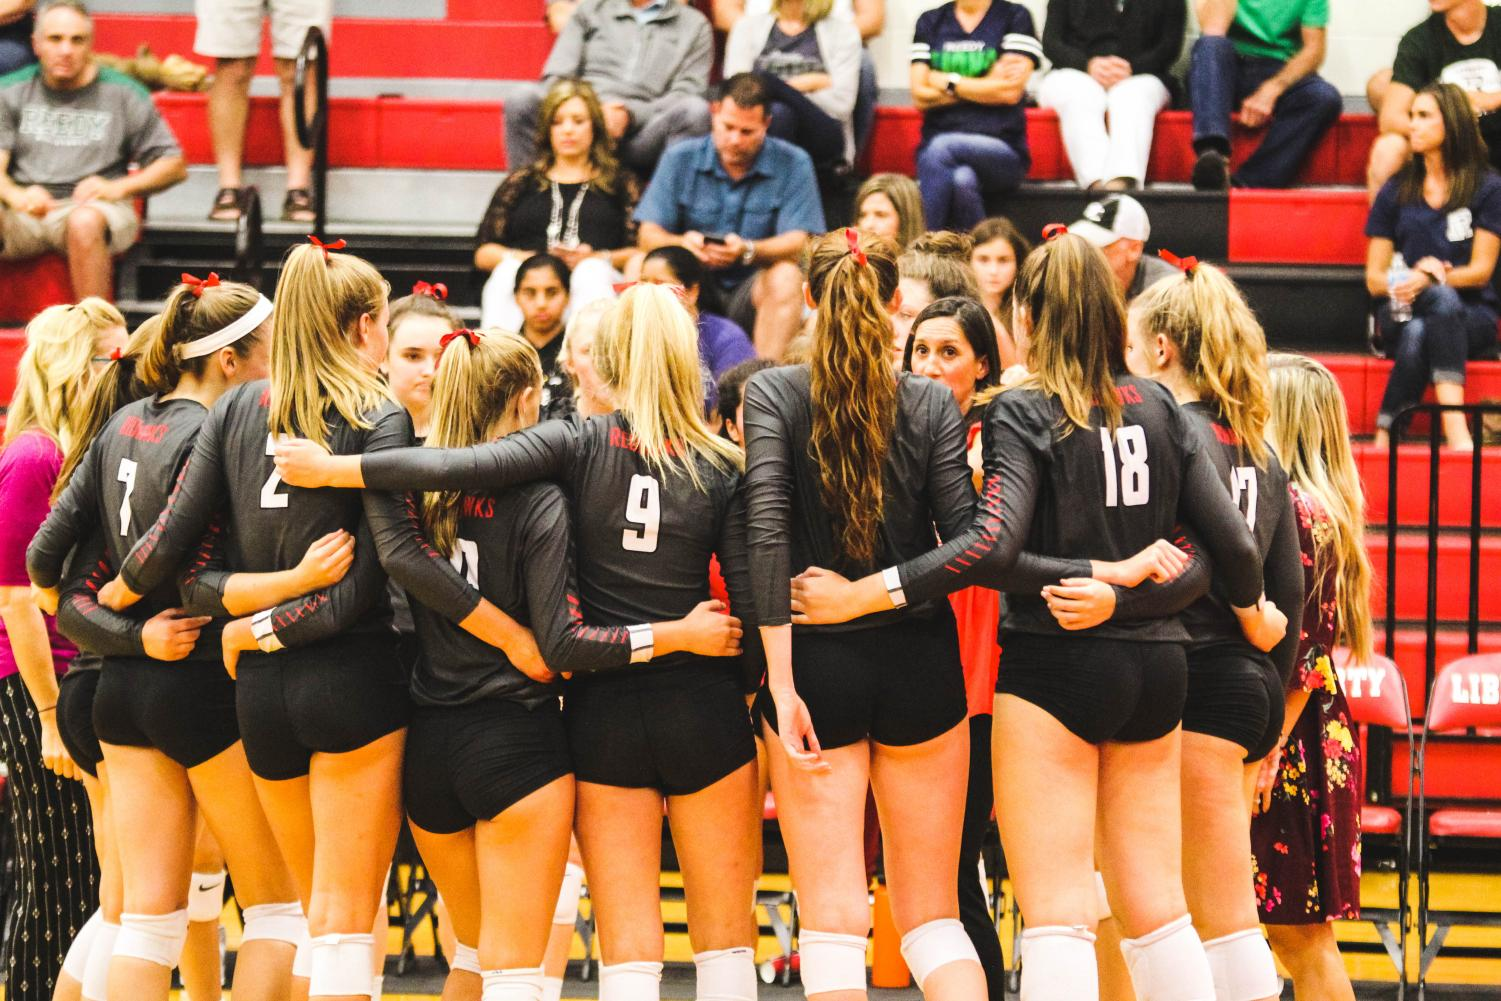 With season around the corner, the Redhawks face off against different teams around the Metroplex. The tournament takes place at Byron Nelson, beginning Thursday and ending on Saturday.